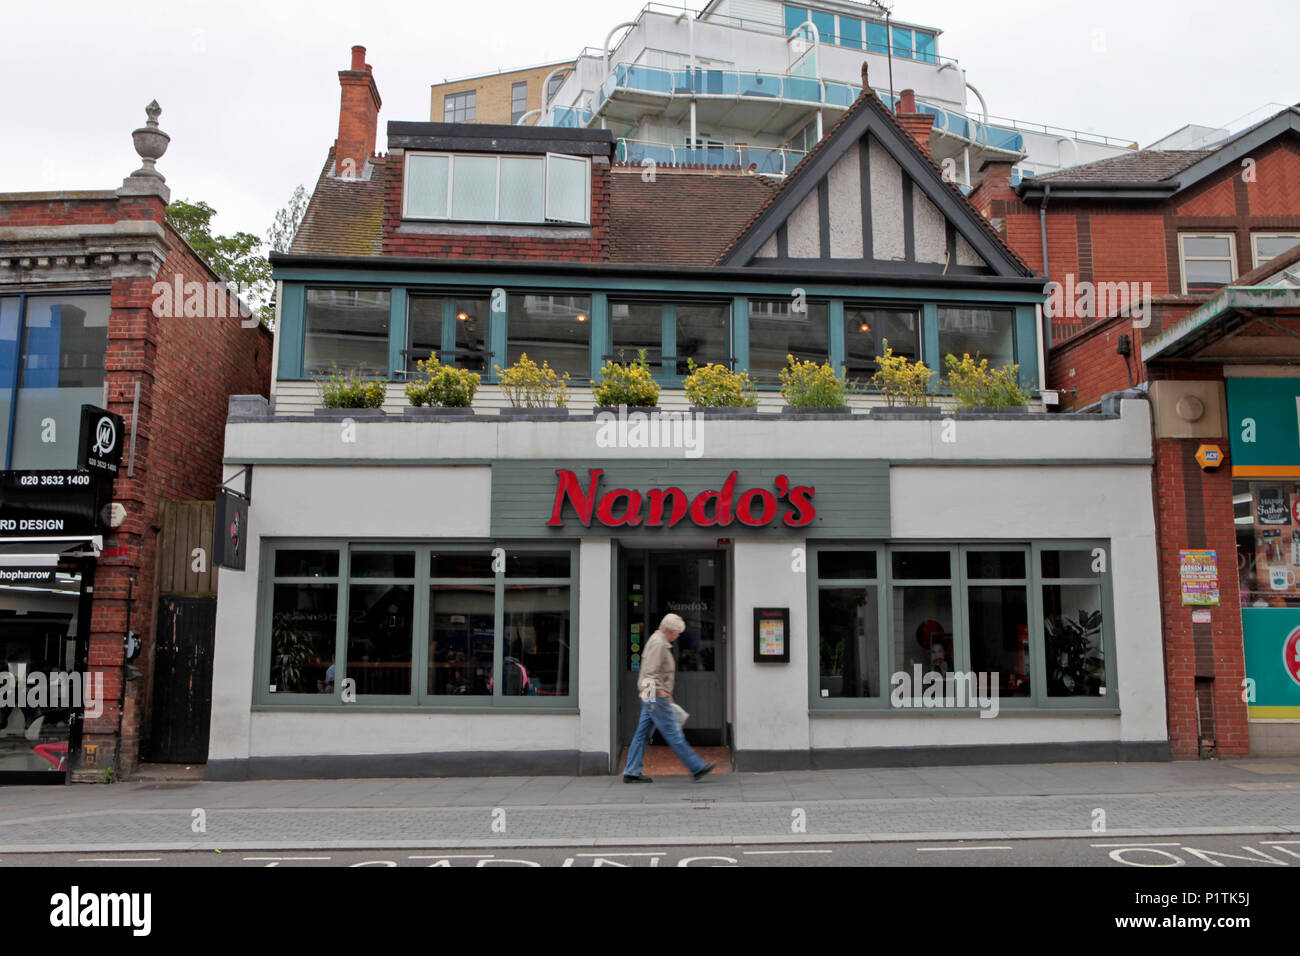 exterior view of a NANDO'S restataurant. Shops and people shopping in Harrow, middlesex, London, UK - Stock Image